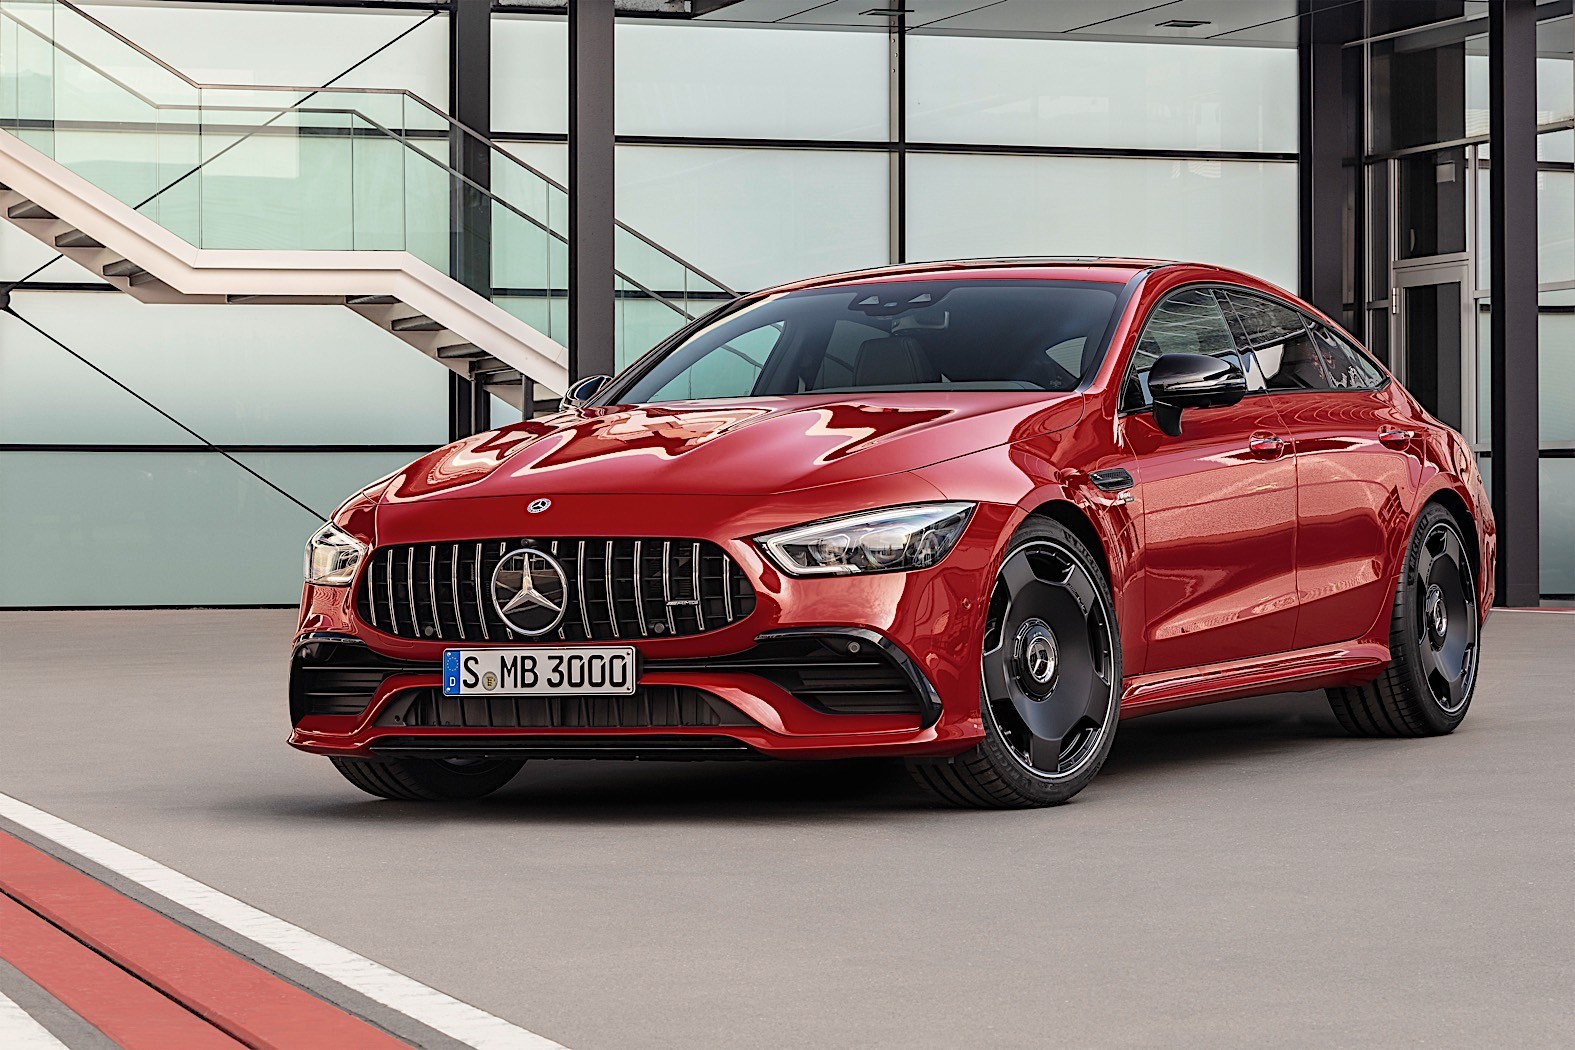 2019 mercedes amg gt 4 door coupe get new entry engine. Black Bedroom Furniture Sets. Home Design Ideas